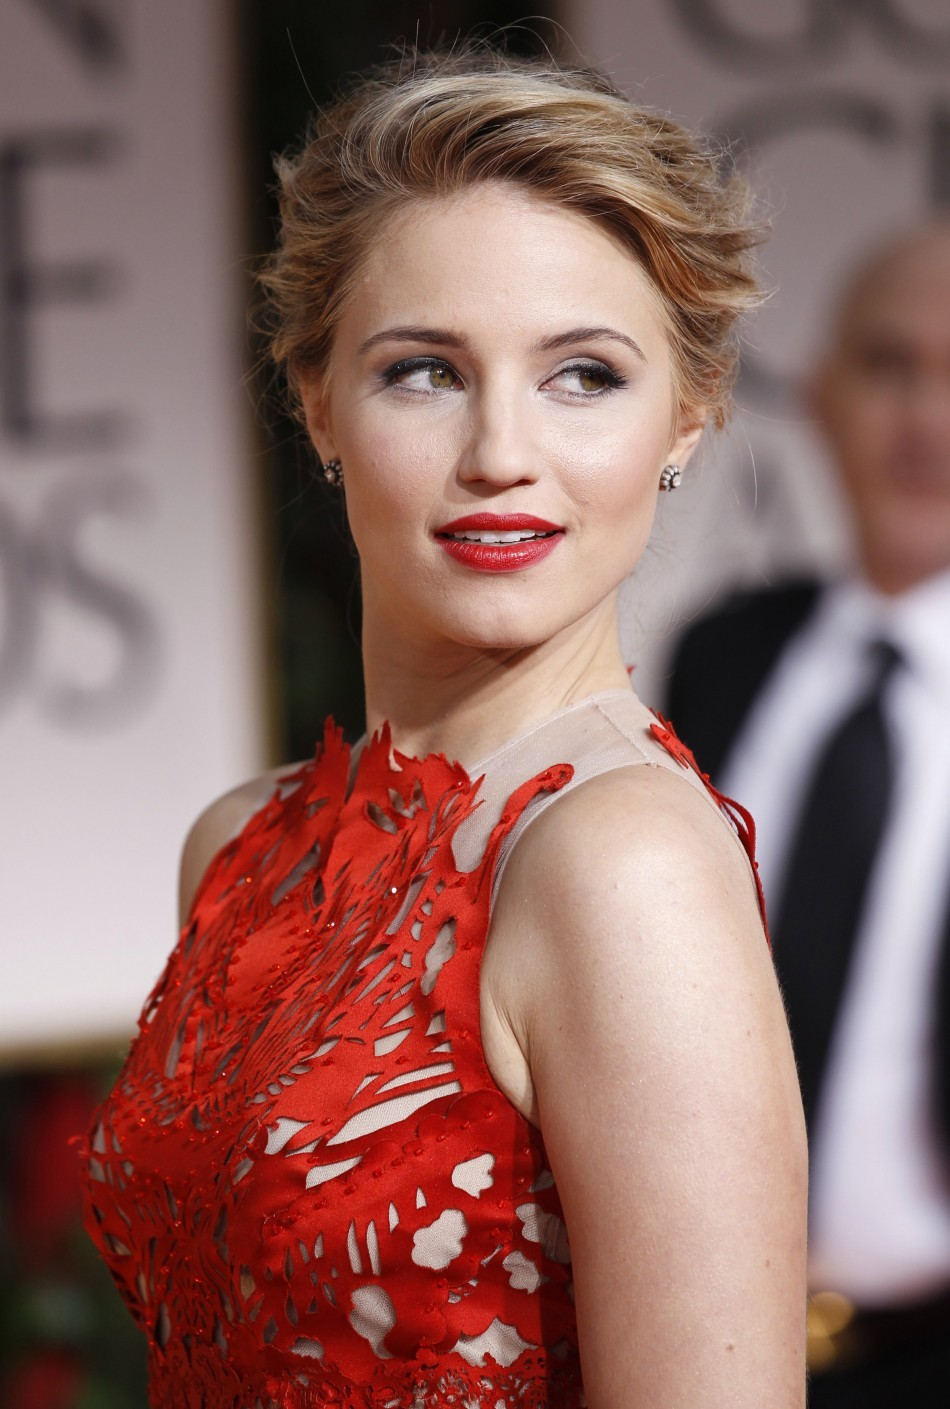 Fifty Shades of Grey Movie Casting: Dianna Agron as Kate Kavanagh?